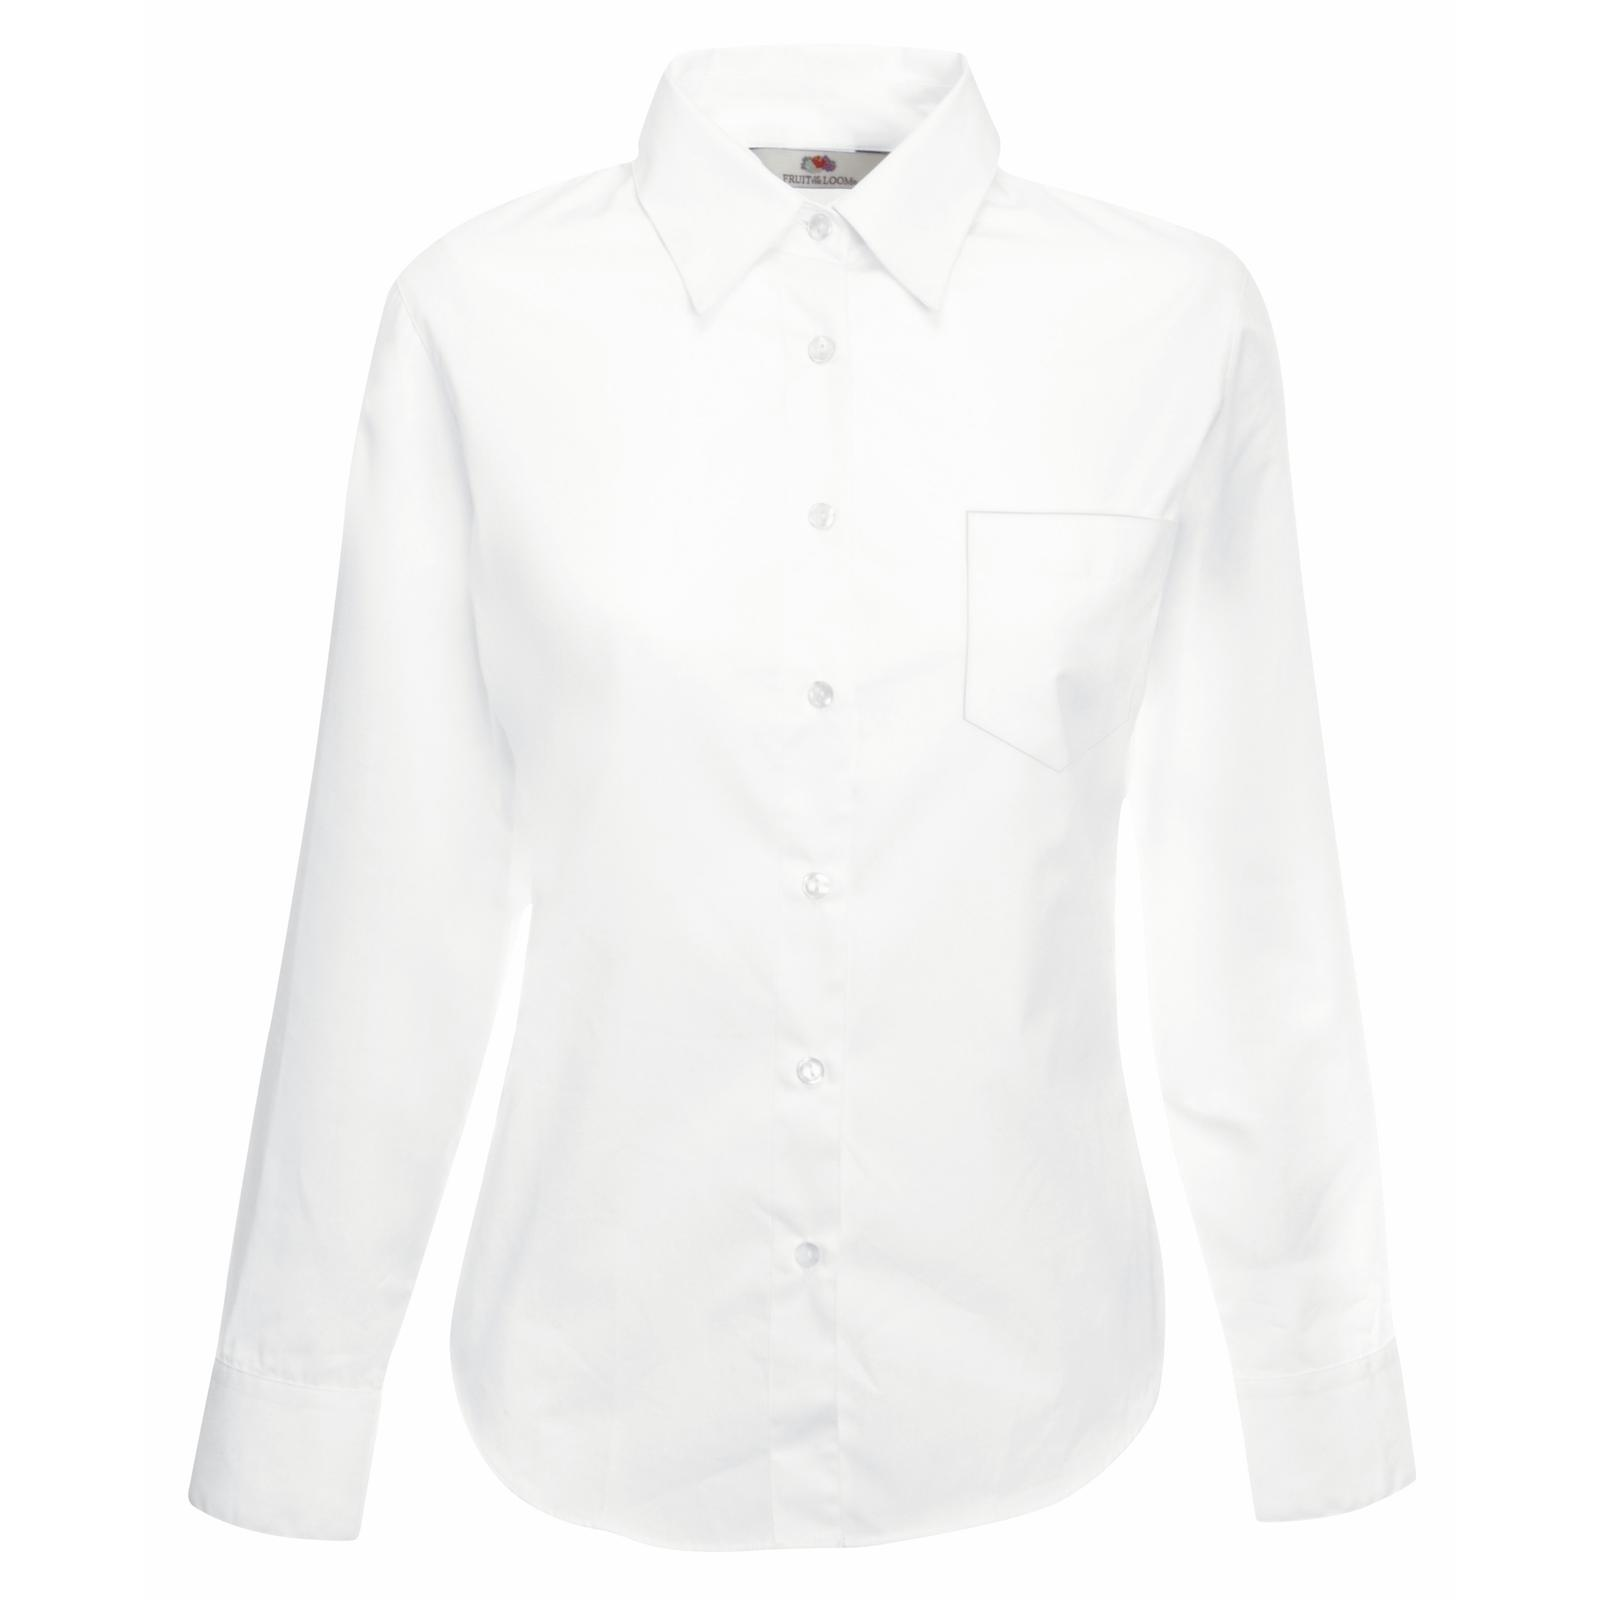 New Fruit Of The Loom Womens Fitted Poplin Long Sleeve